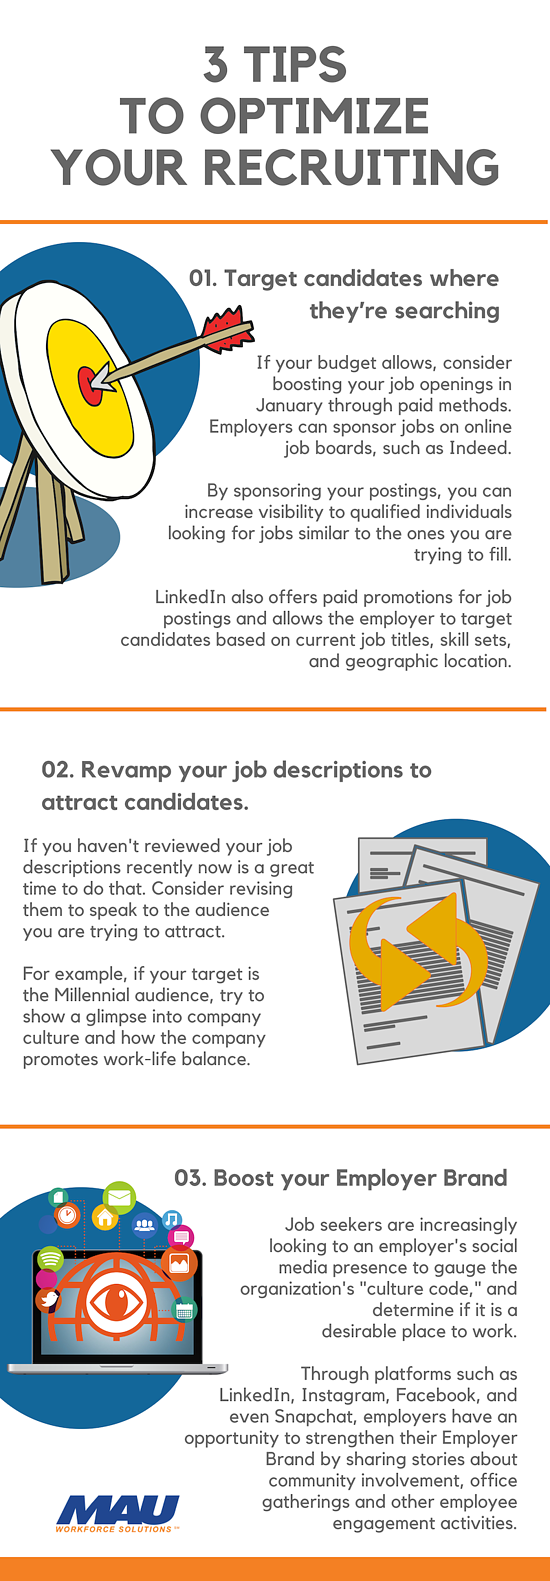 3 tips to optimize your recruiting and hiring efforts starting today! (4)